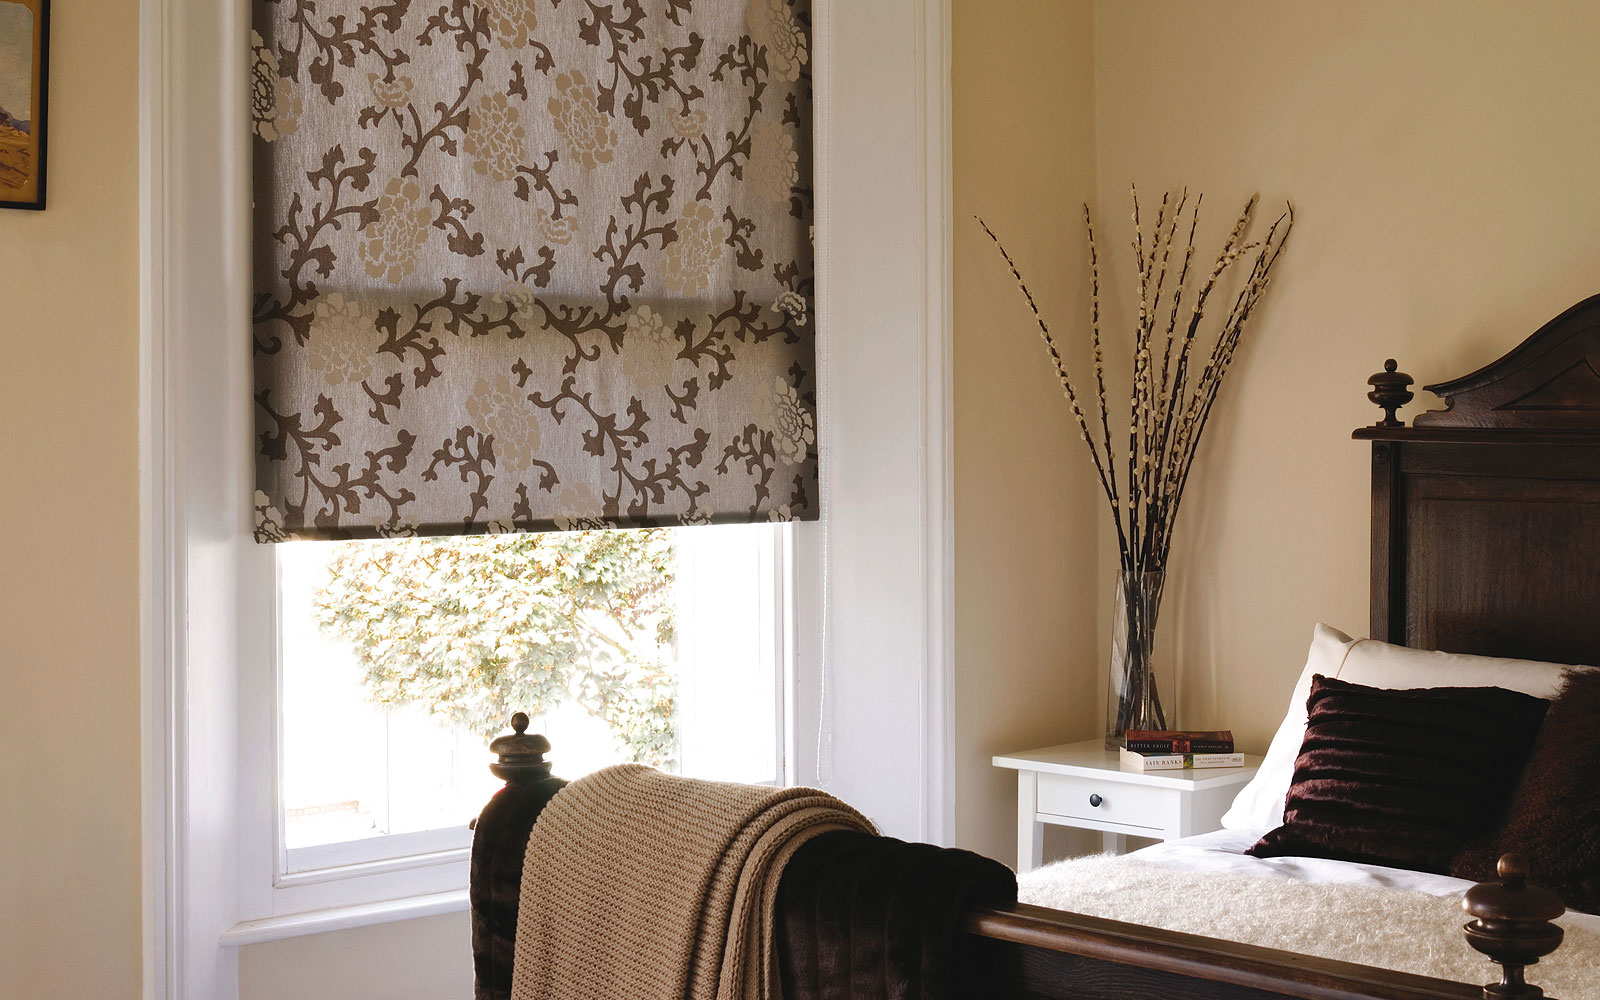 Bedroom blinds expression blinds Window coverings for bedrooms